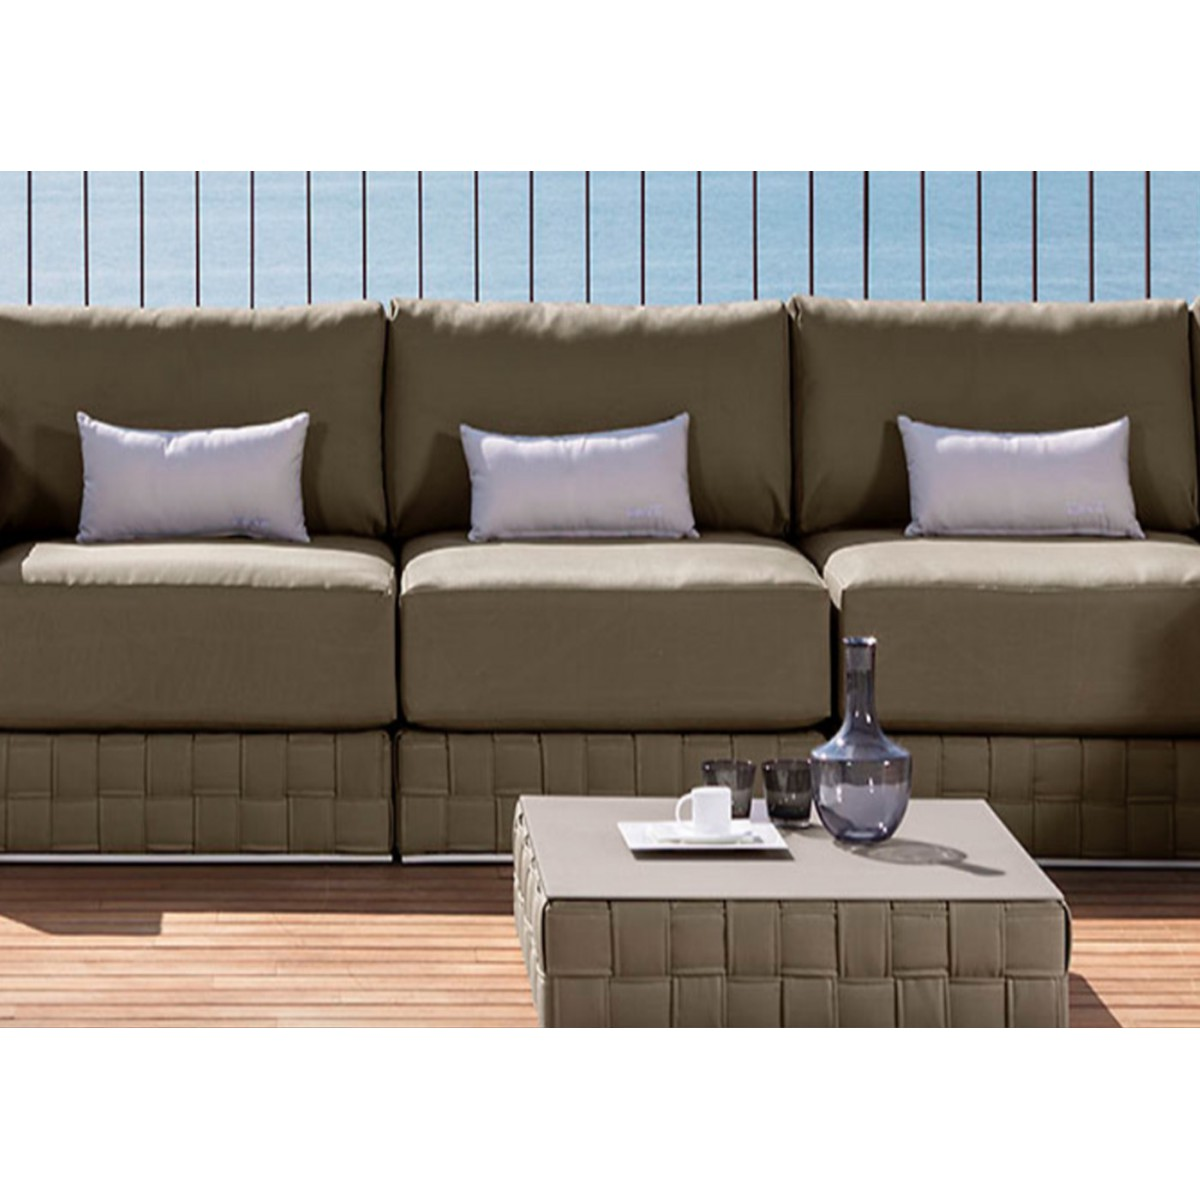 coussin d 39 ext rieur outdoor pour fauteuil et canap patch par talenti. Black Bedroom Furniture Sets. Home Design Ideas